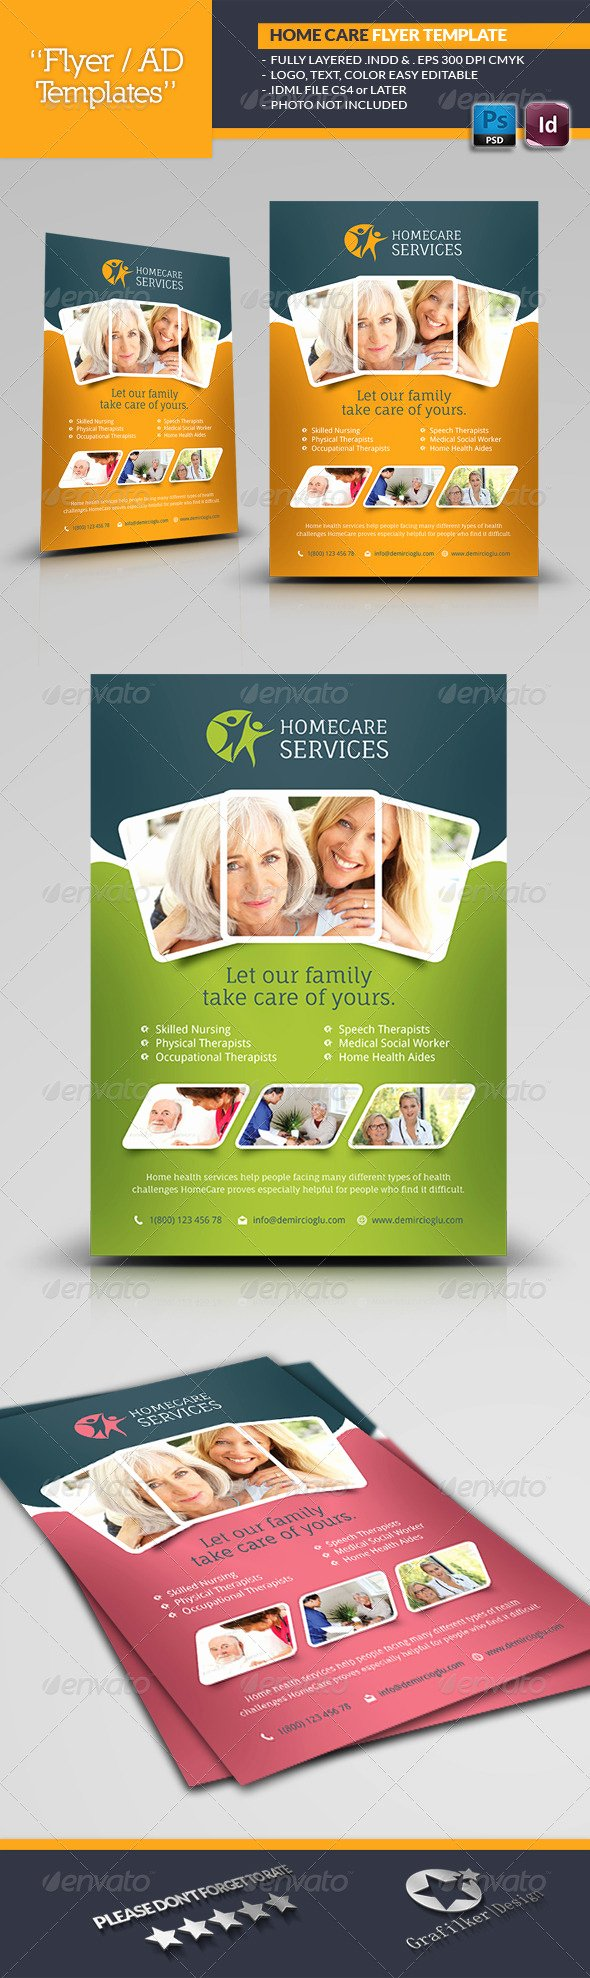 Home Health Care Flyers Lovely Free Template for A Seniors Nursing Home Care Flyers